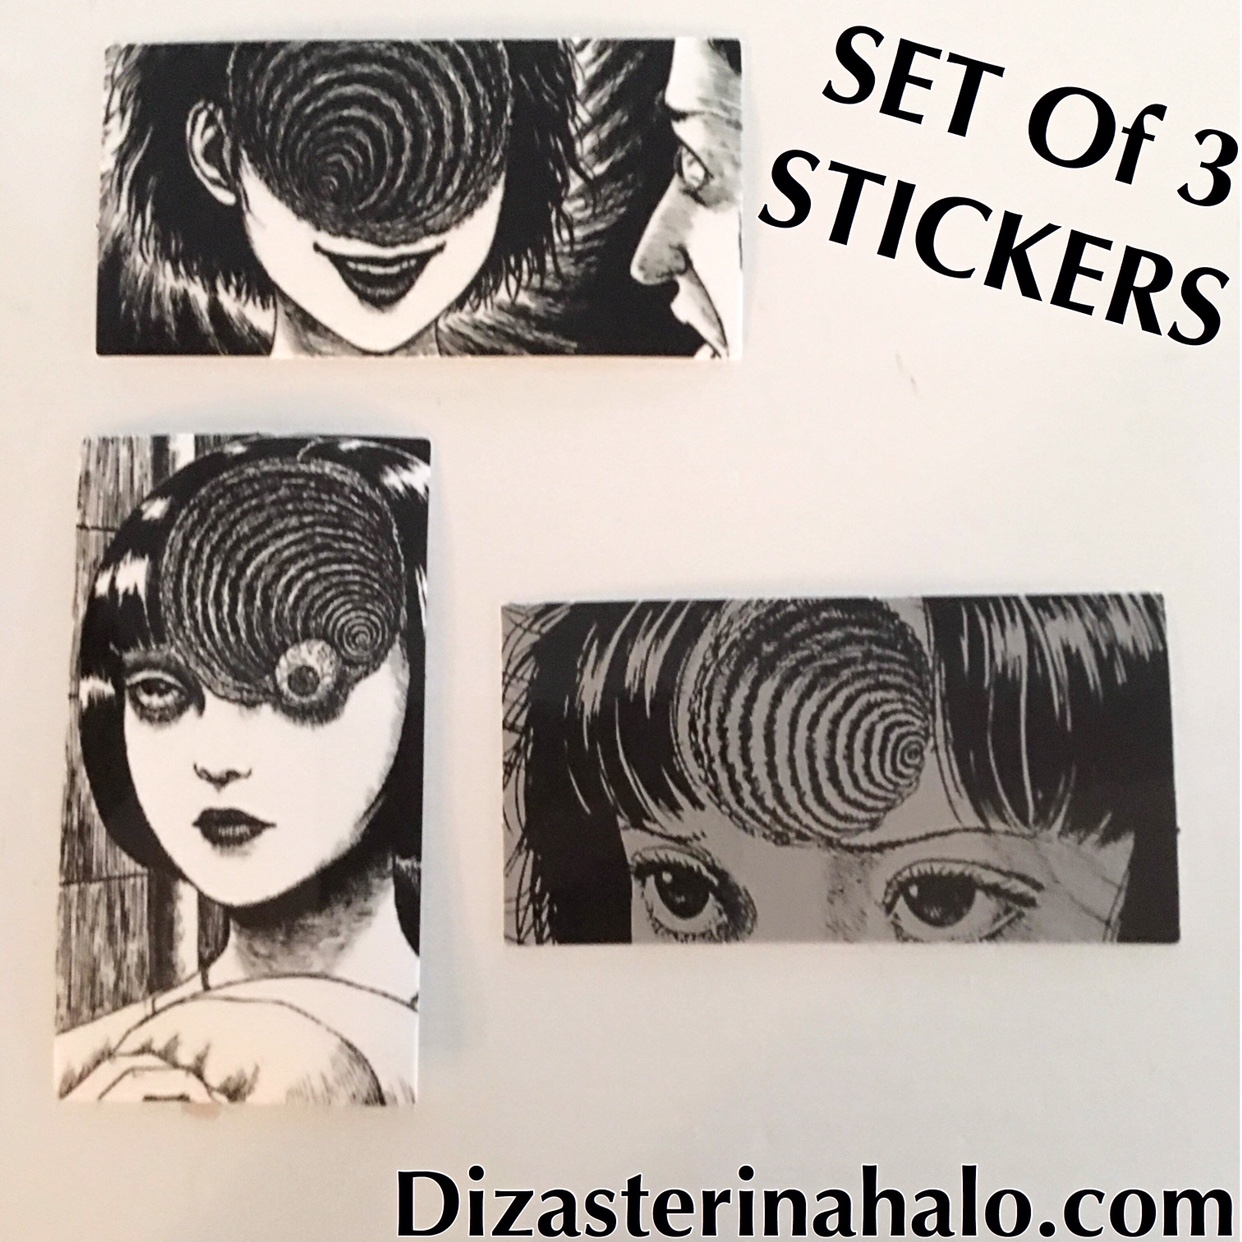 3 Anime Horror Stickers Size 3X3 Inches  #japan    - Depop